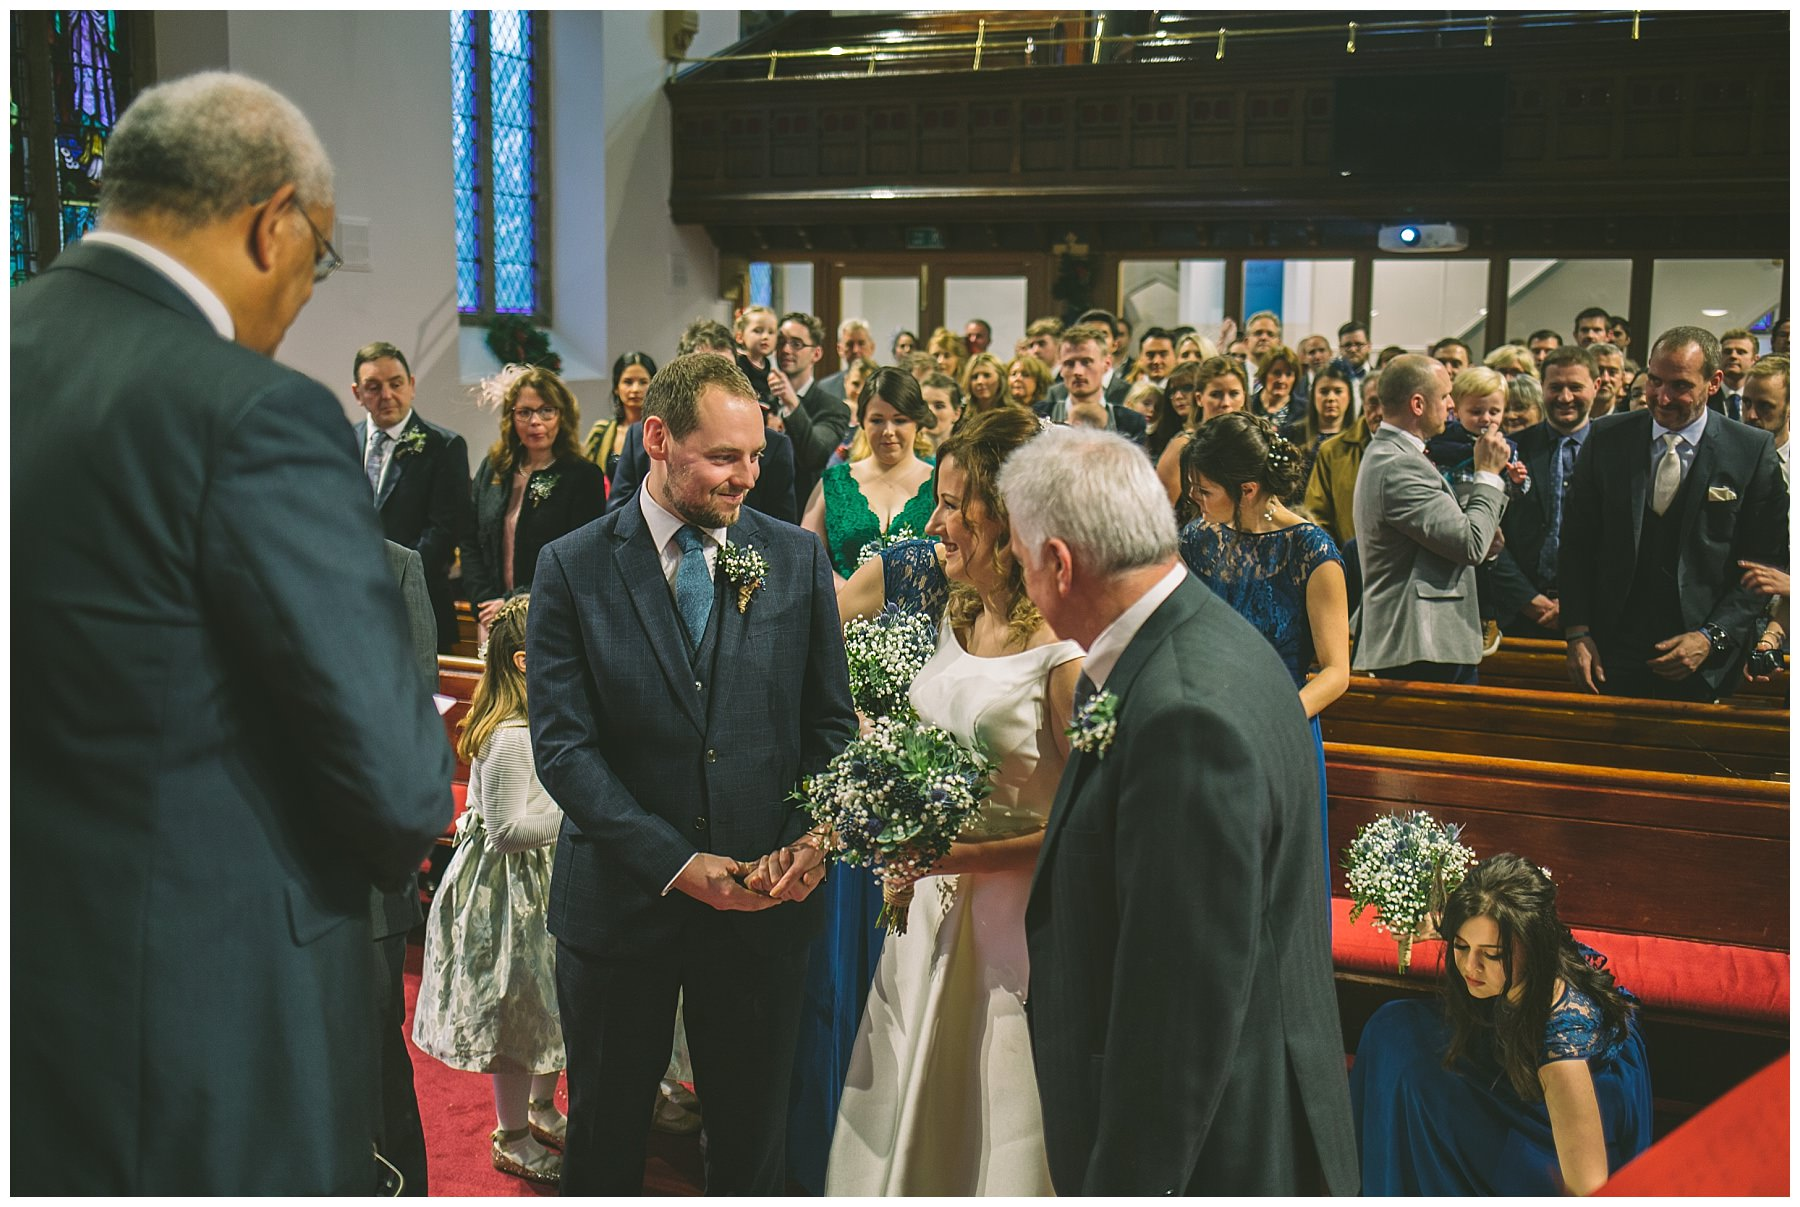 Groom sees his bride for the first time at ramsbottom wedding